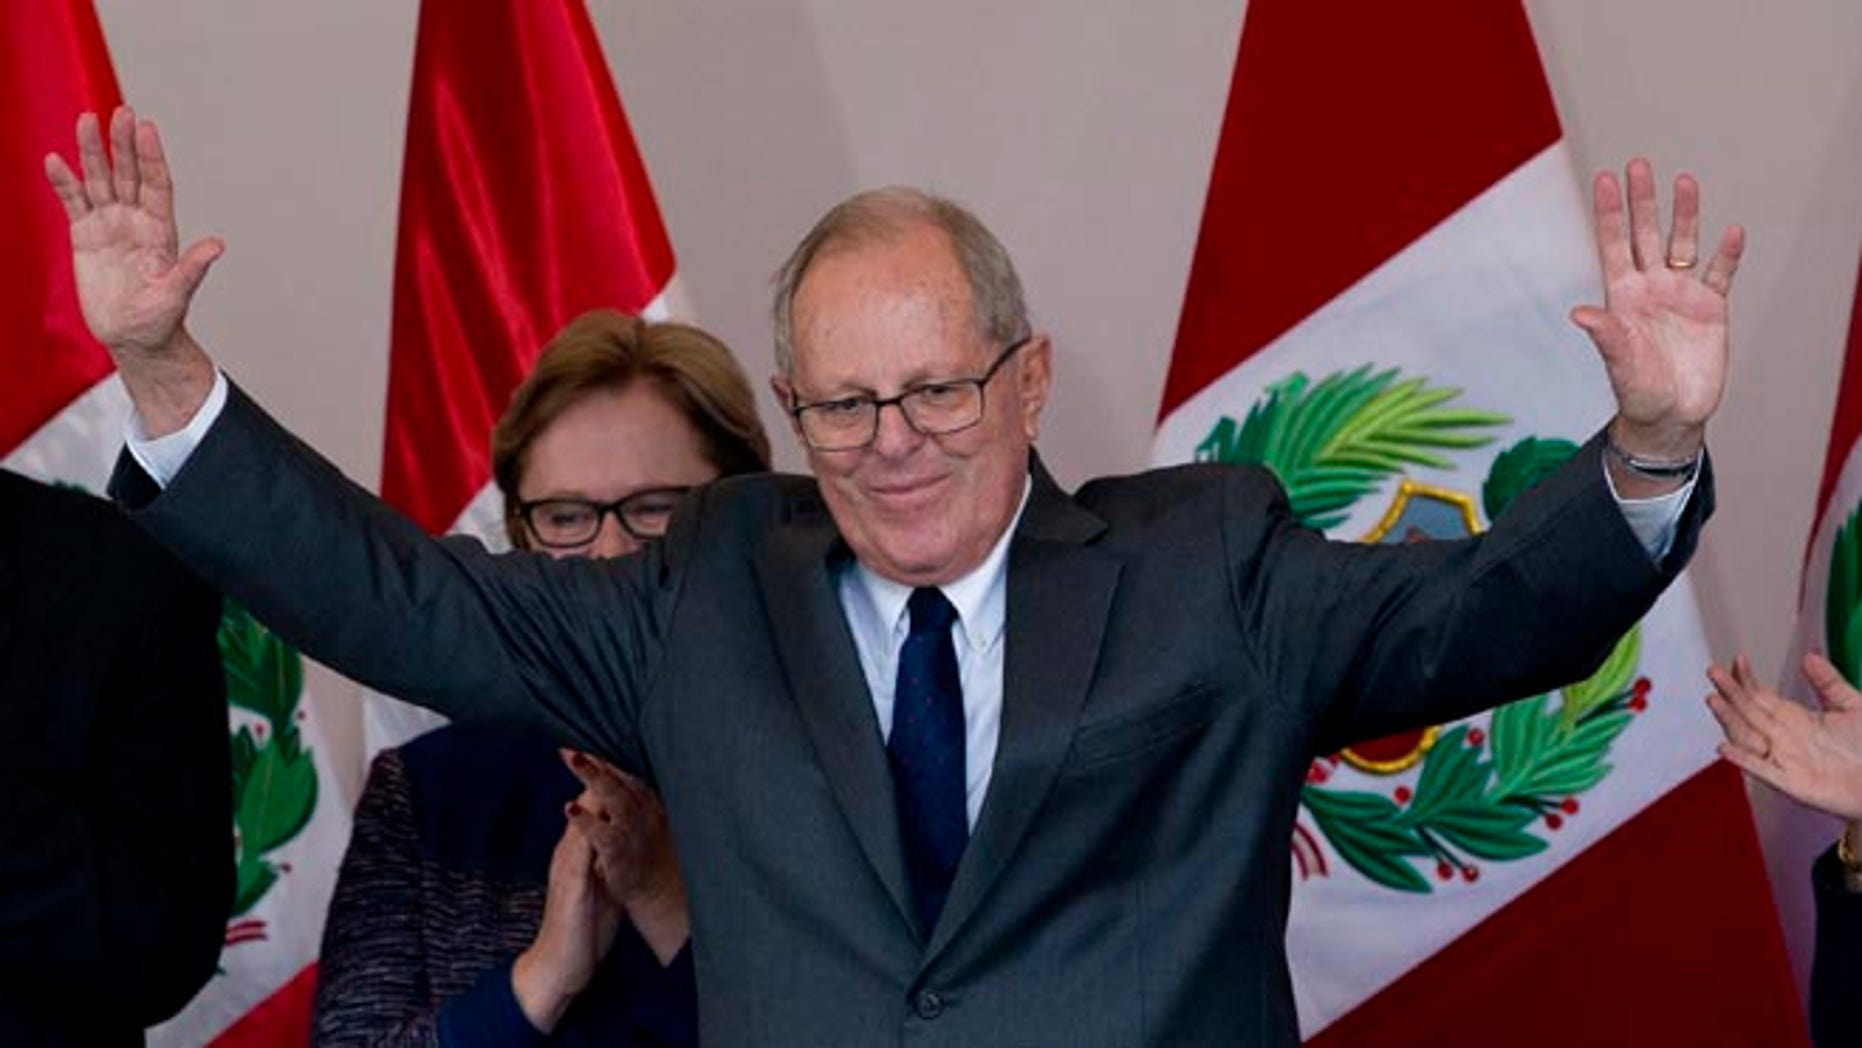 Pedro Pablo Kuczynski acknowledges the crowd at the end of a news conference in Lima, Peru, June 9, 2016.